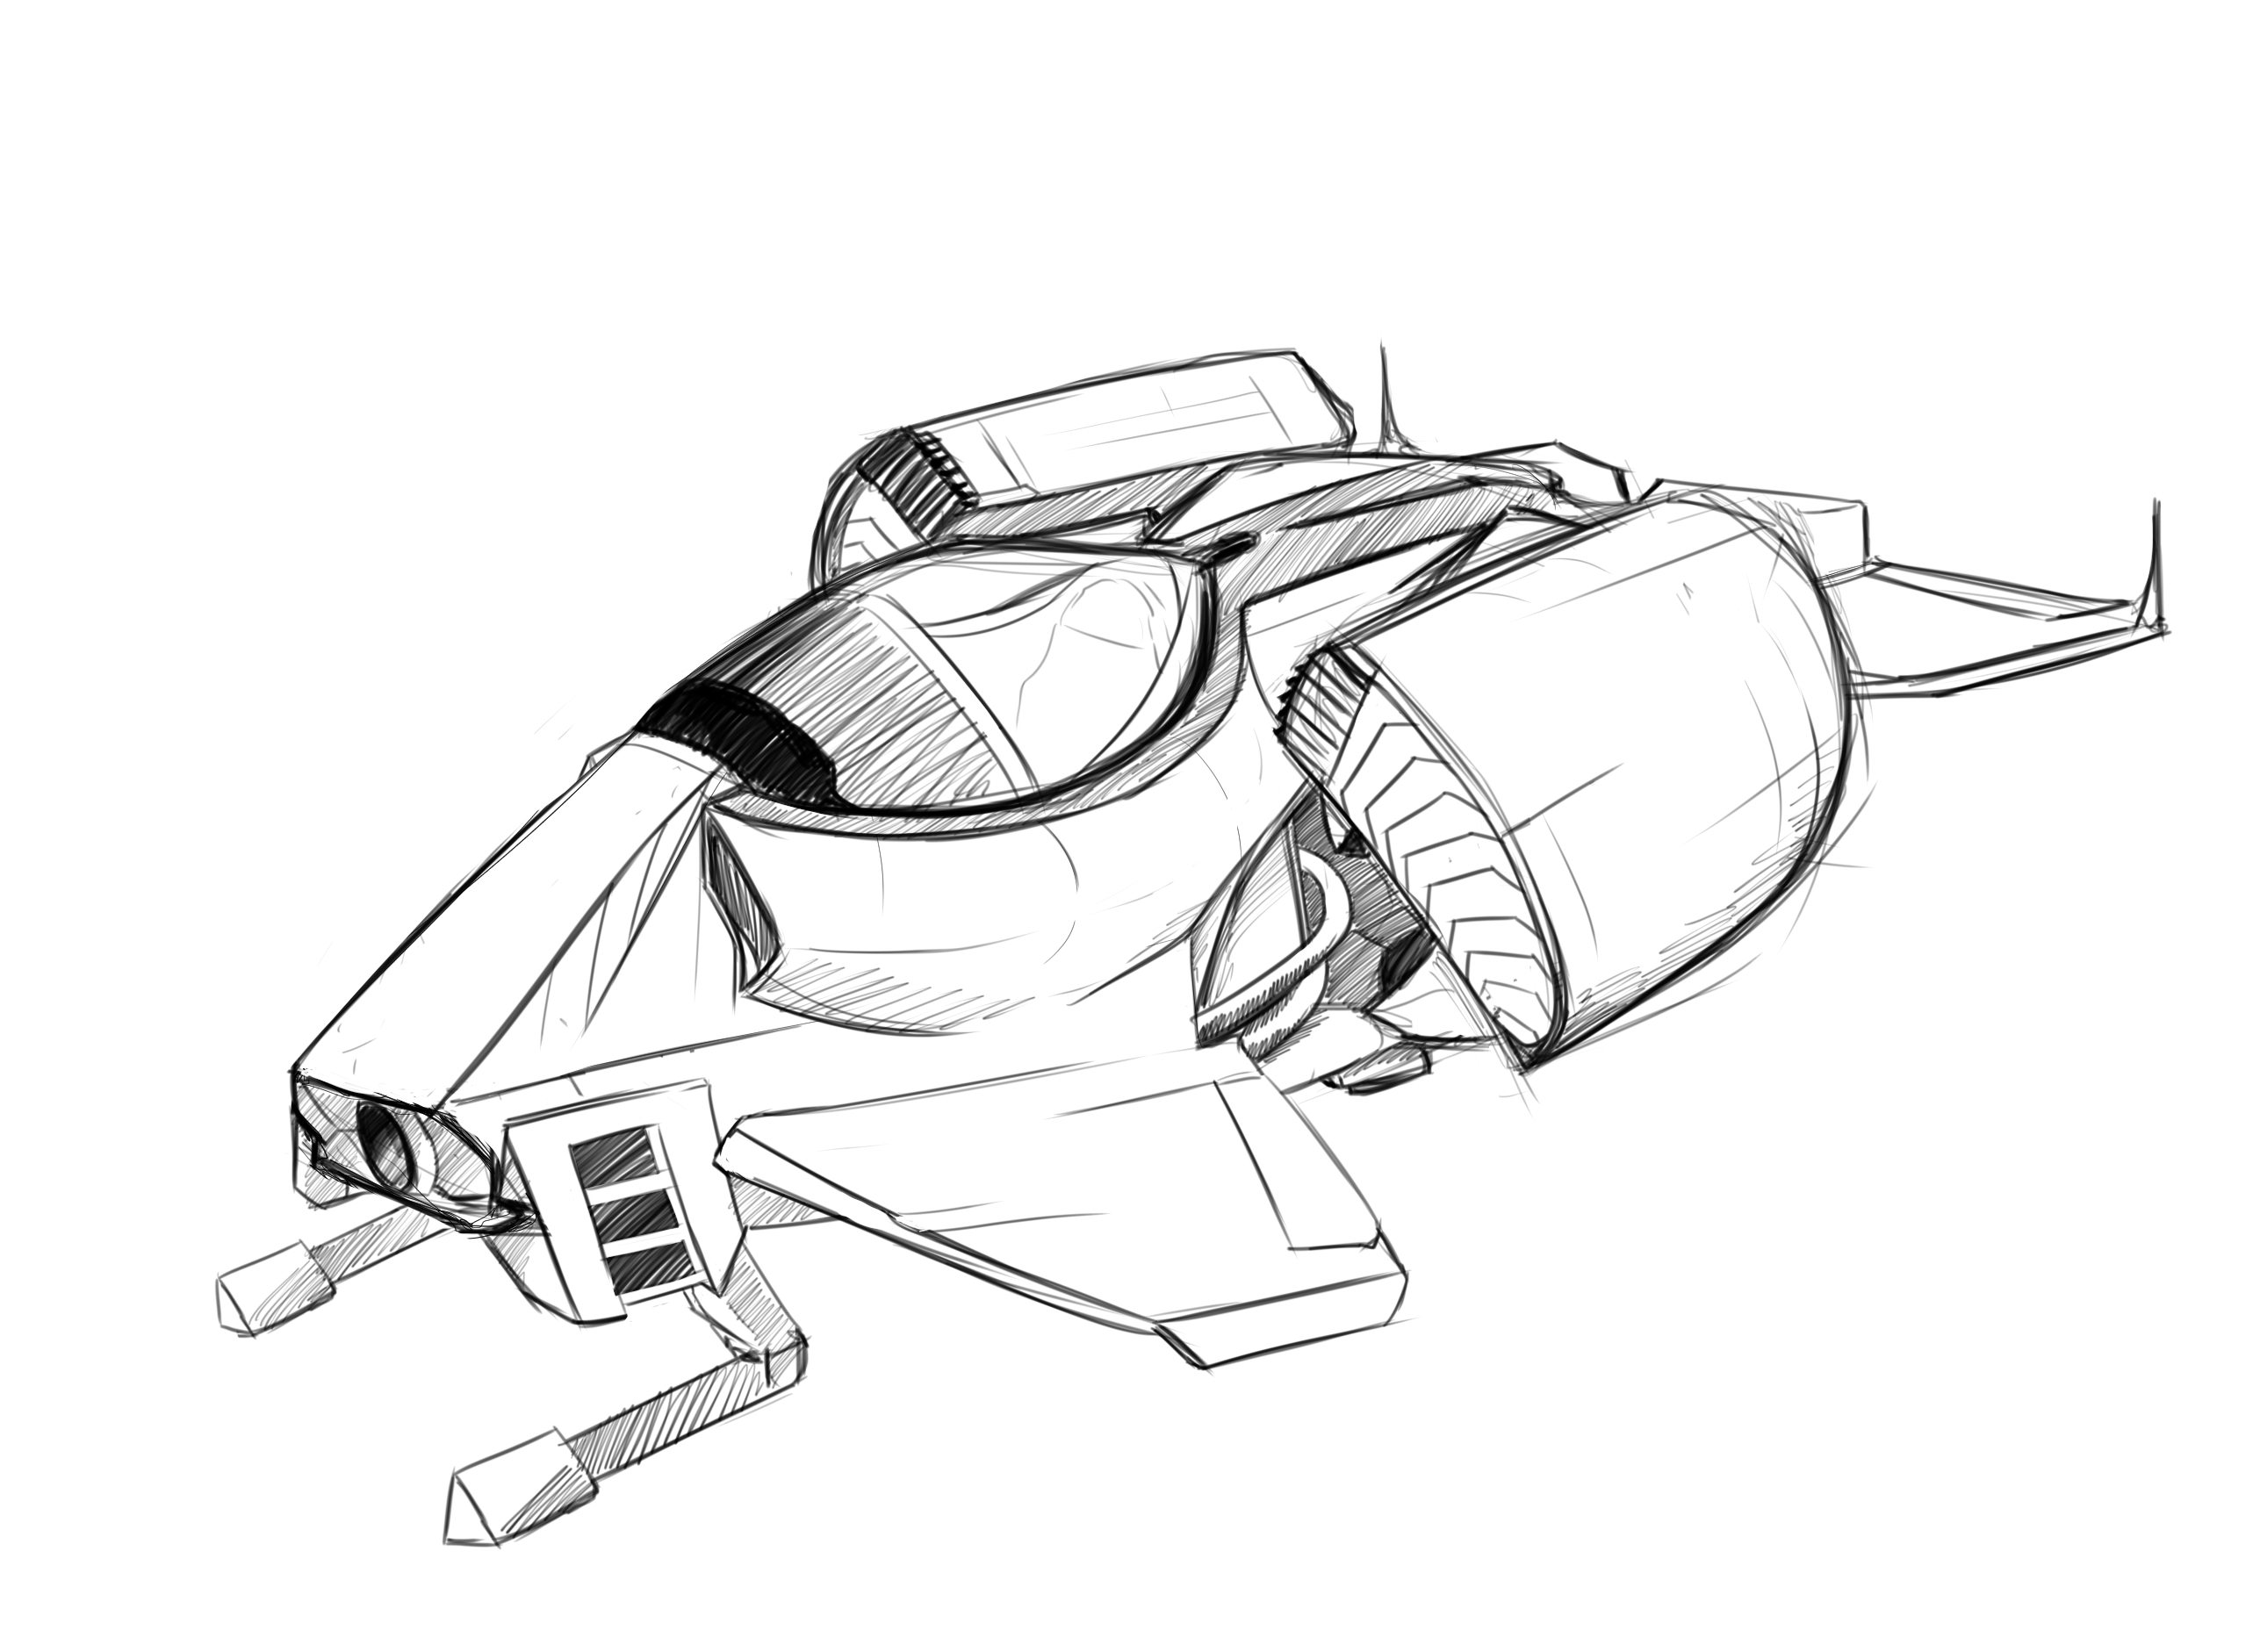 2574x1882 Spaceship Design Sketch By Polhudo On Newgrounds